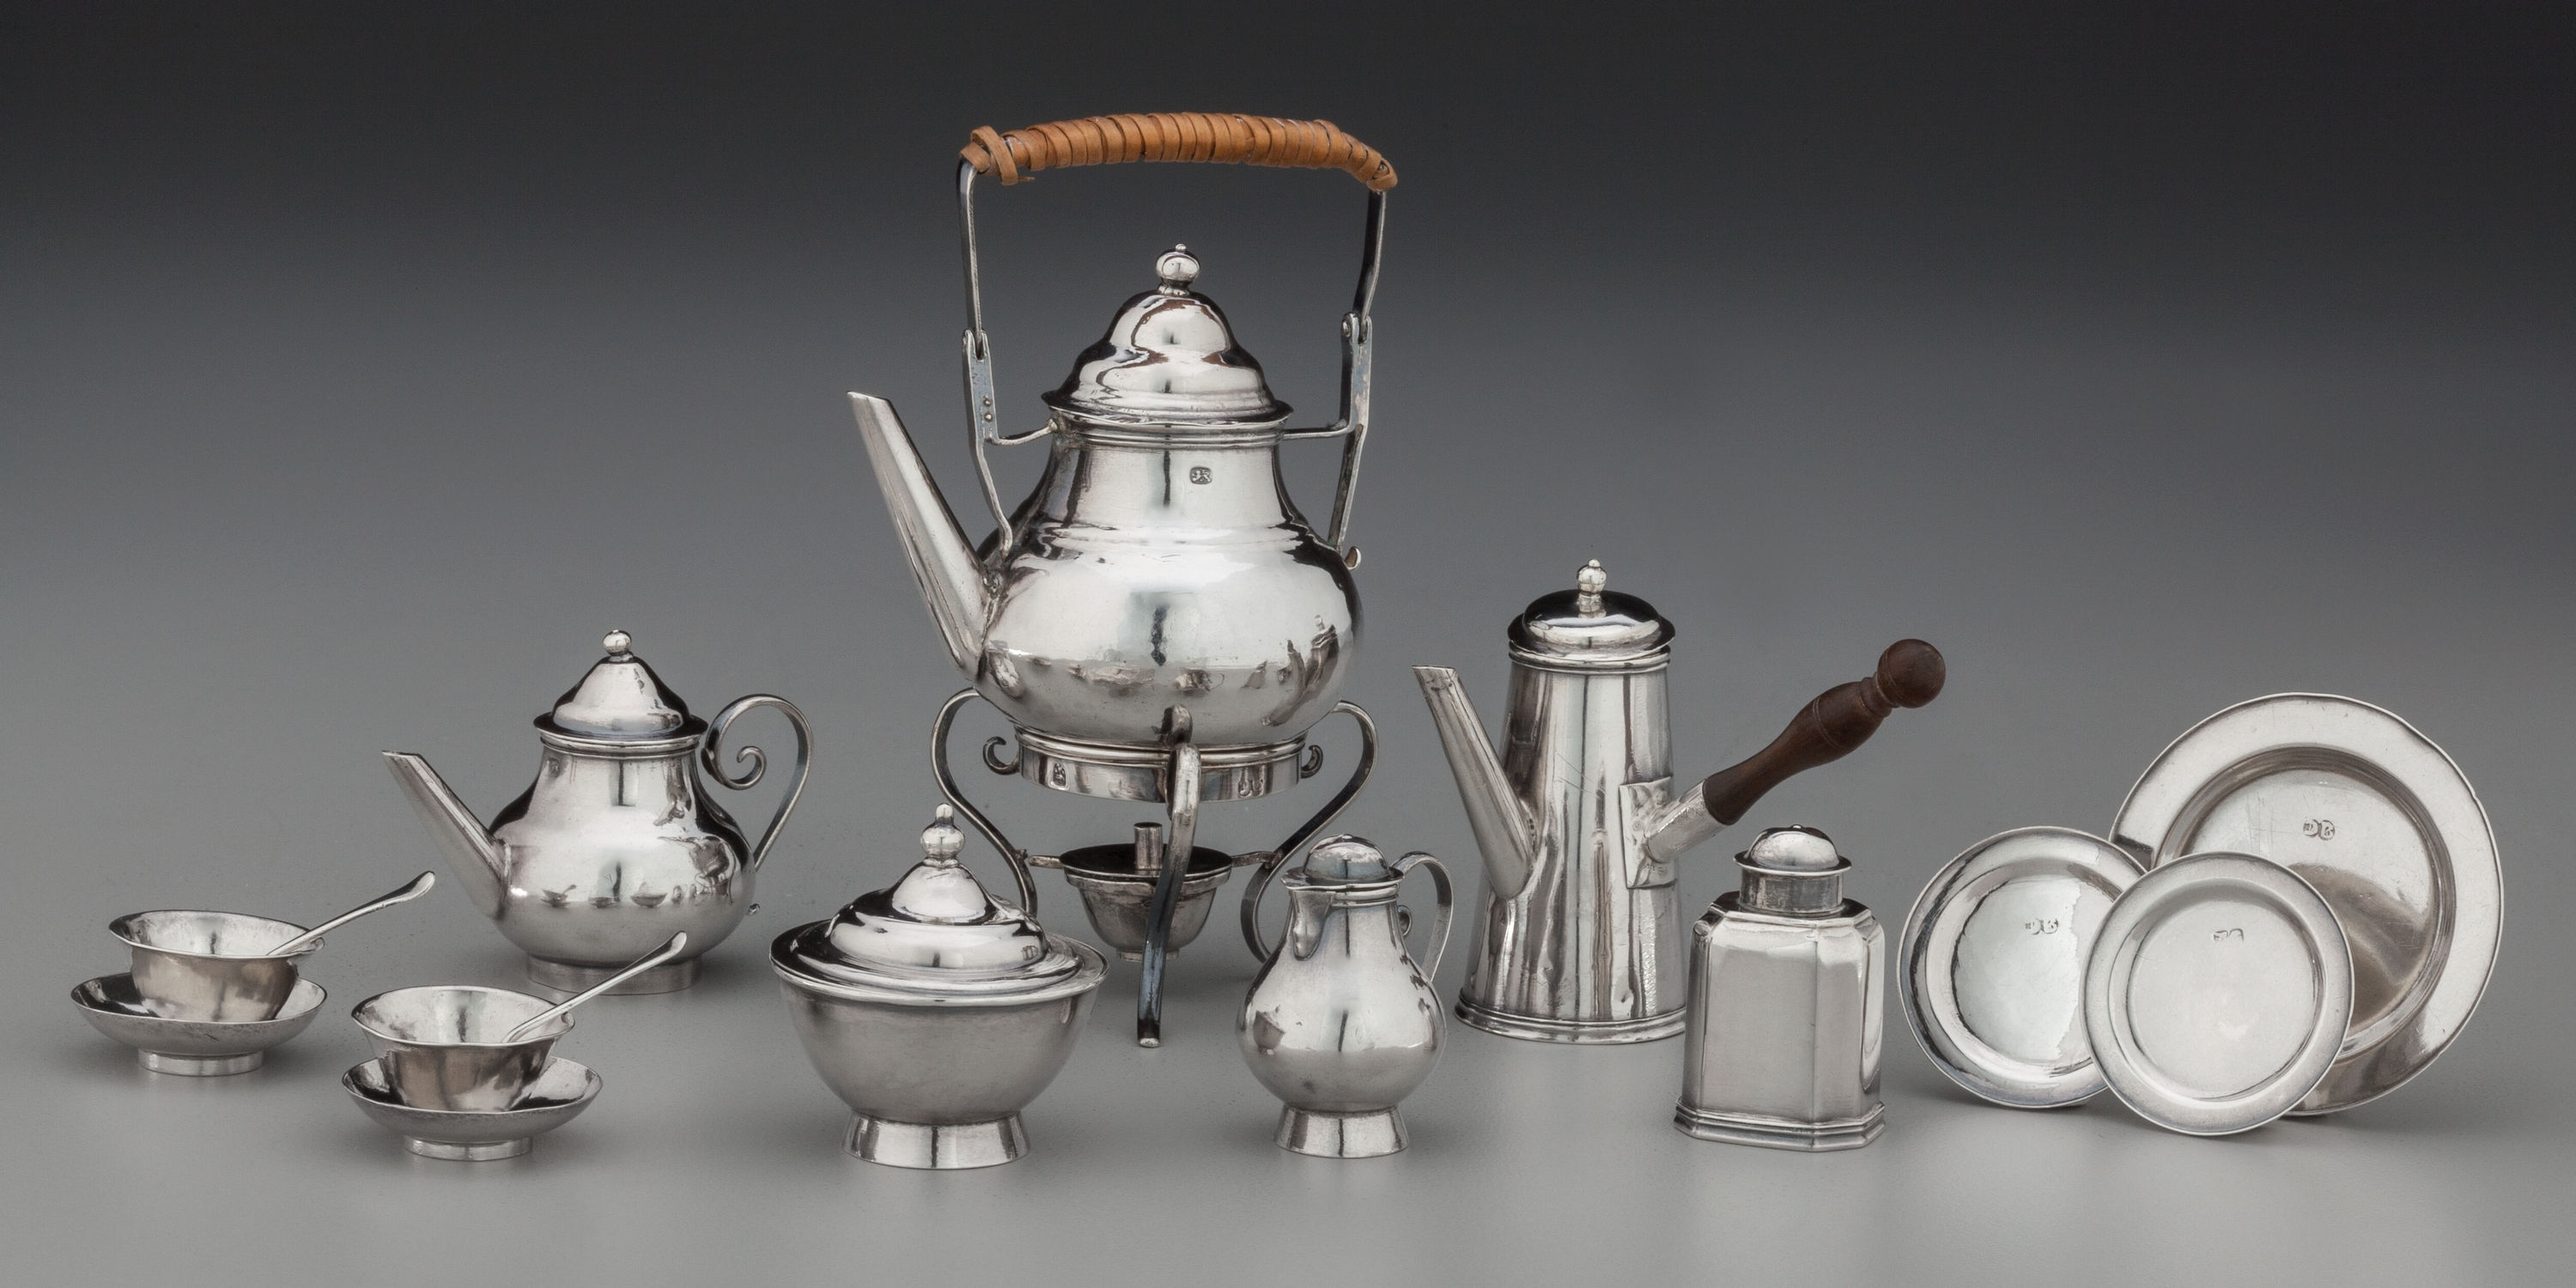 Silver to reign supreme at Heritage Auctions Nov. 12